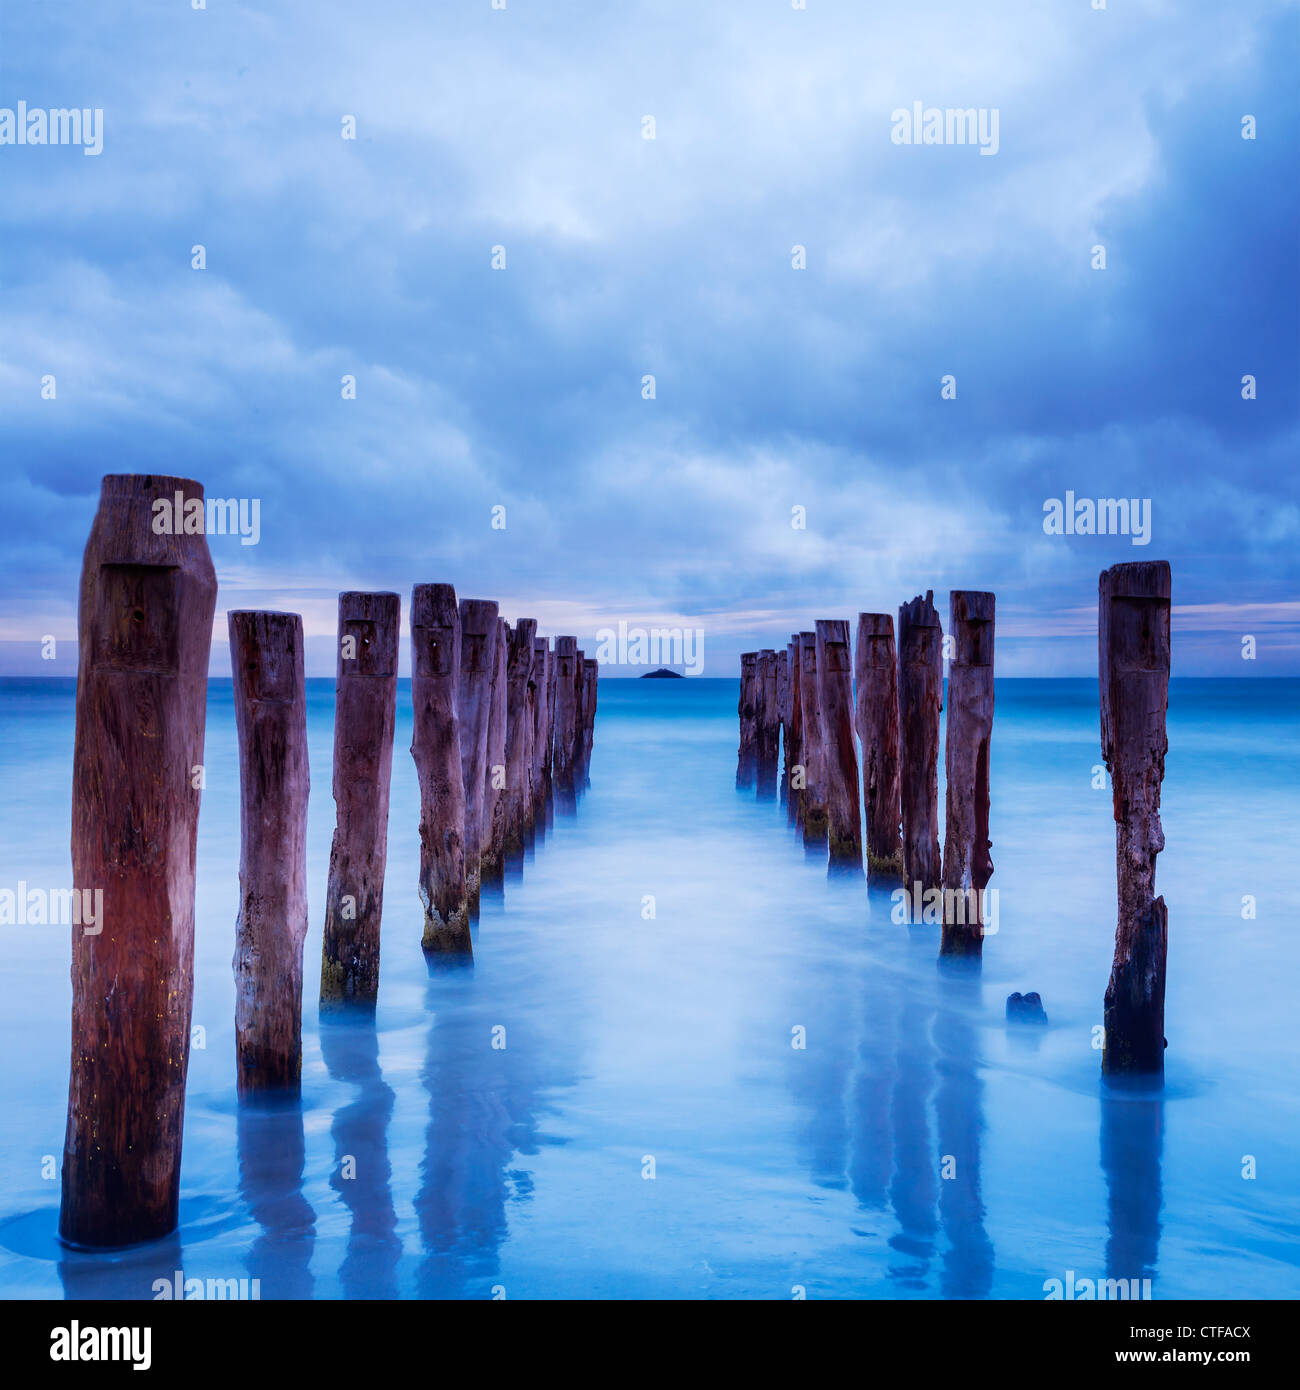 Storm clouds gather over old jetty posts. - Stock Image